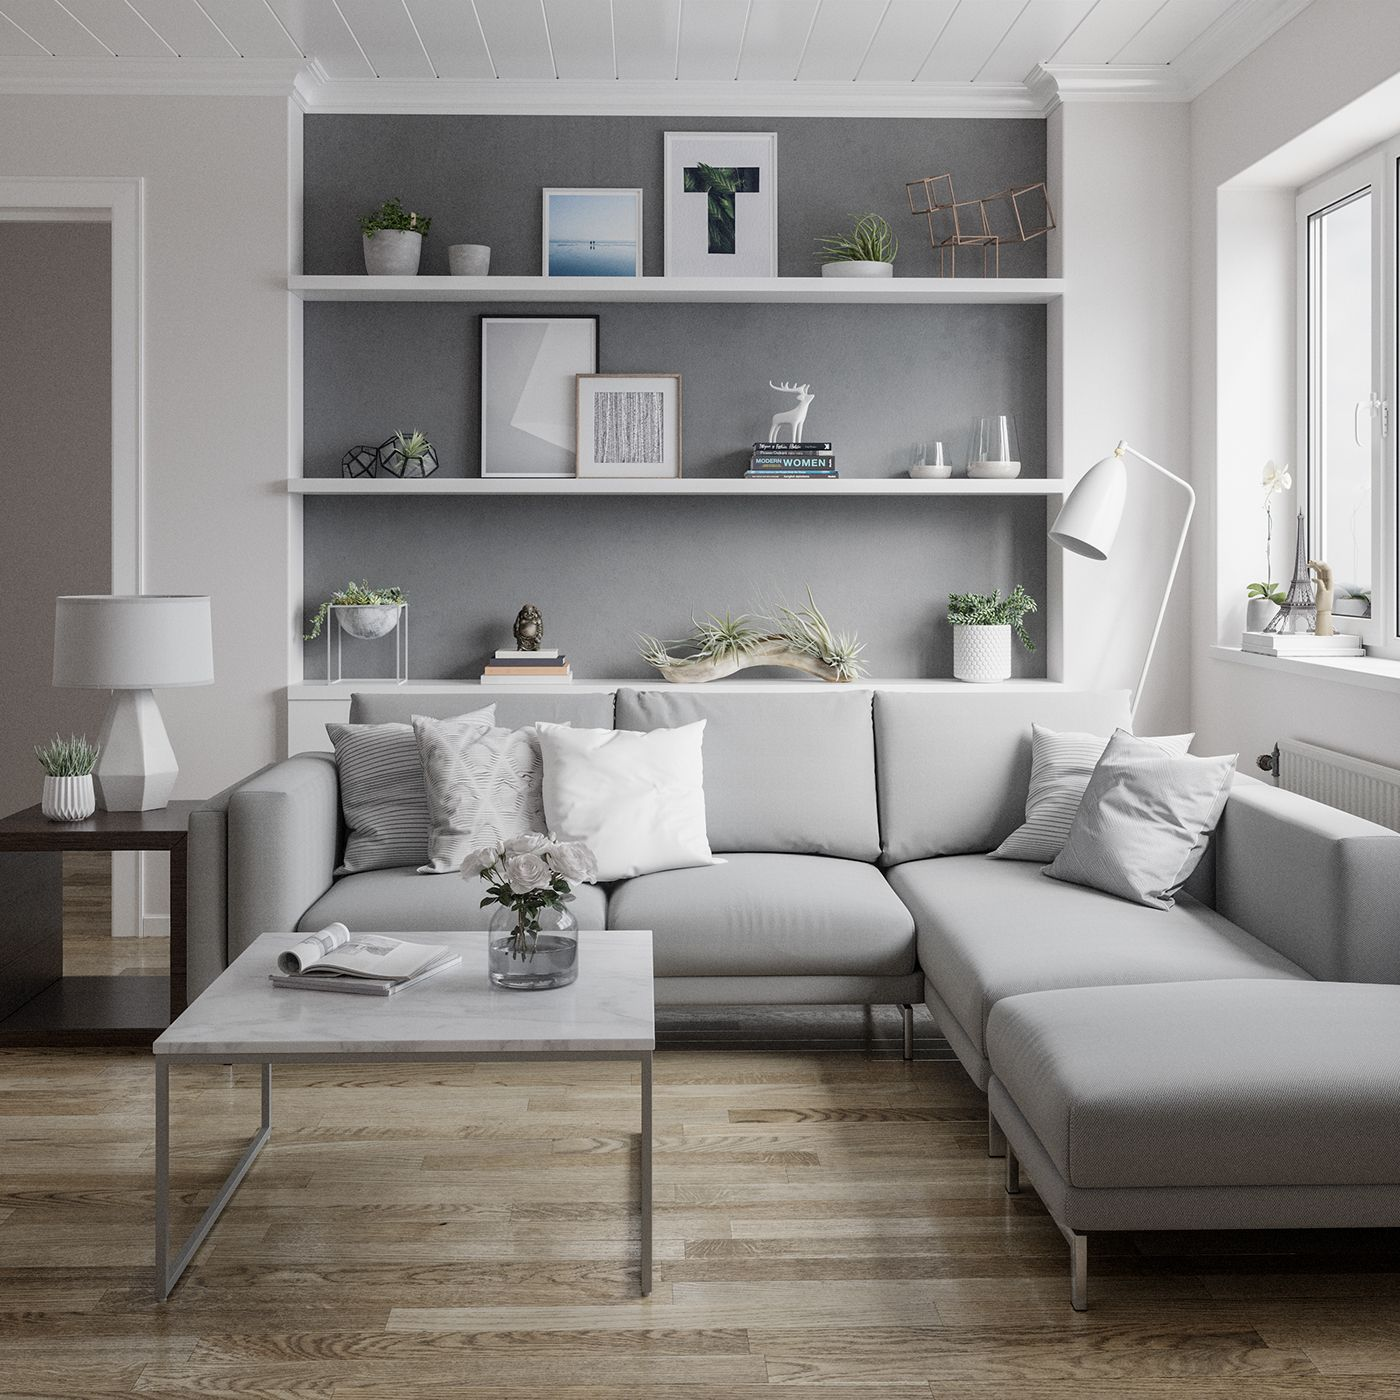 46 Cozy Living Room Ideas And Designs For 2019: Scandinavian Living Room On Behance In 2019